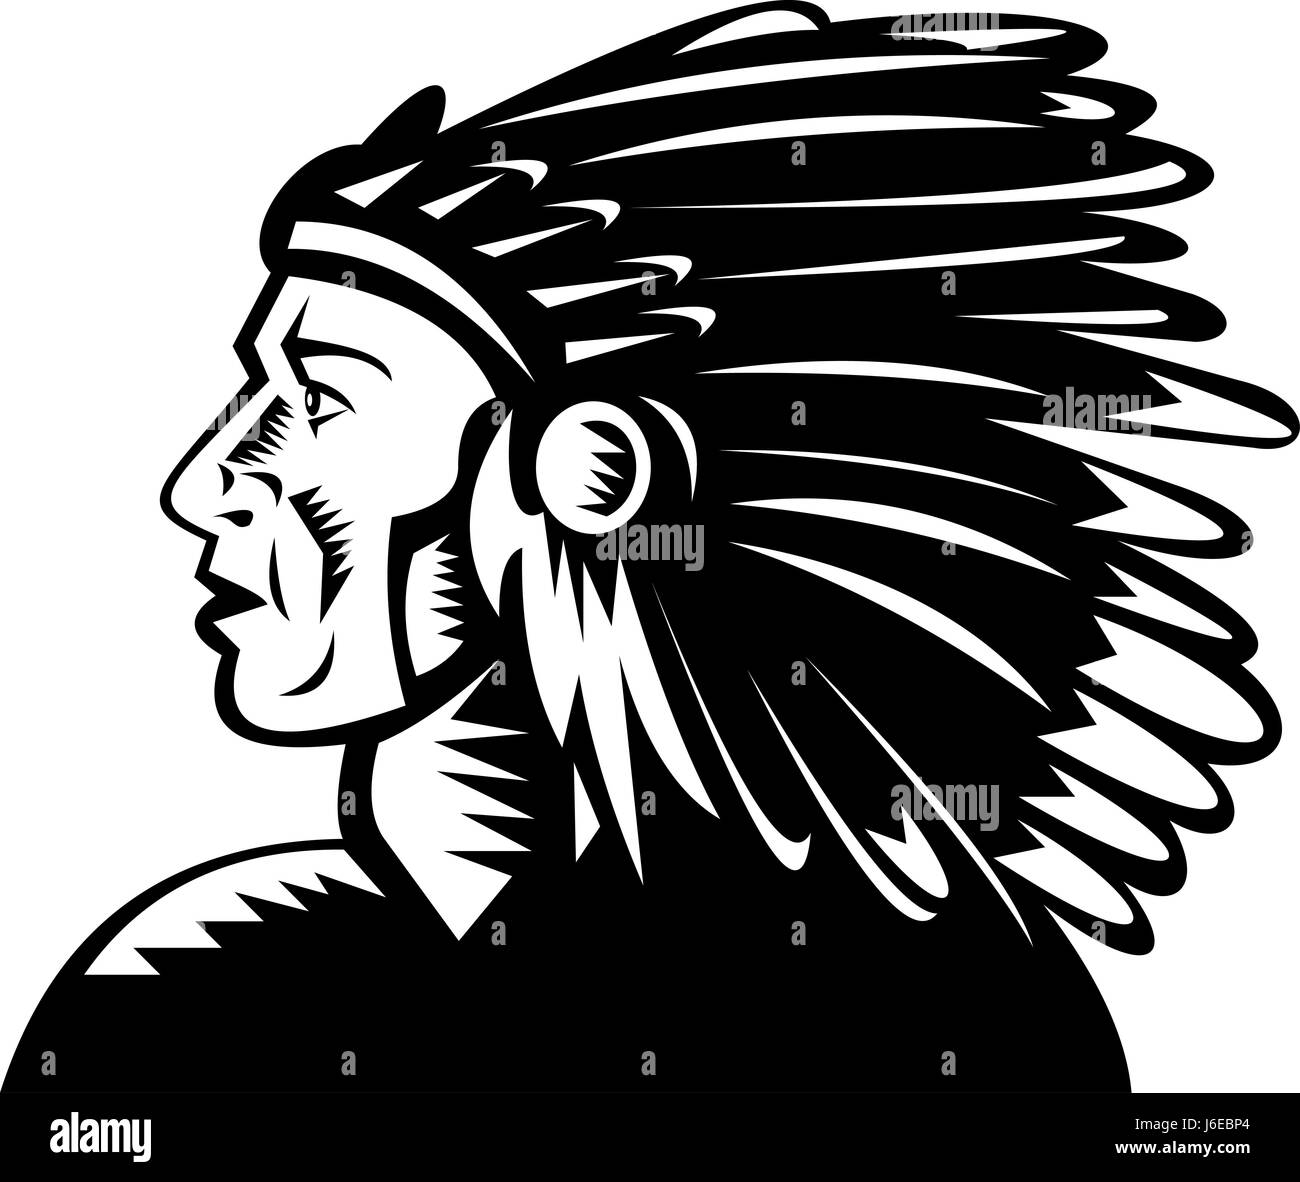 american illustration native leader captain chieftain chief boss manager - Stock Image